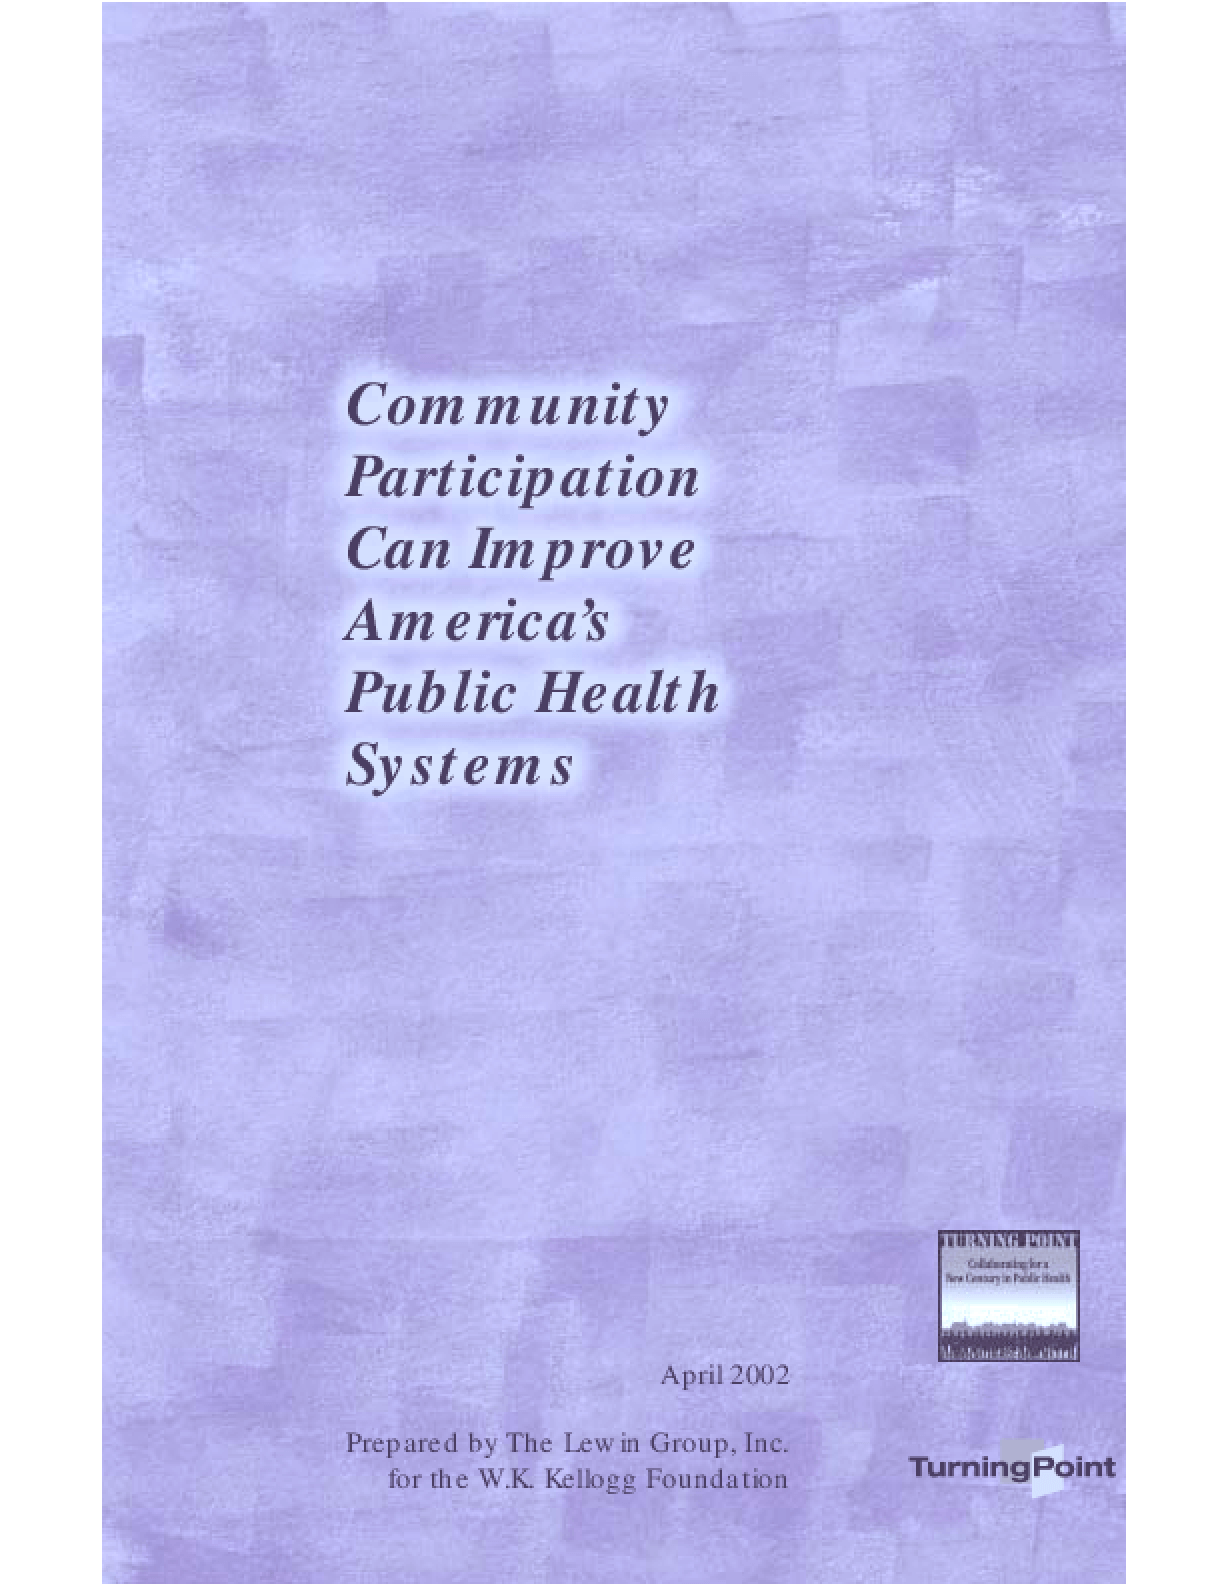 Community Participation Can Improve America's Public Health Systems